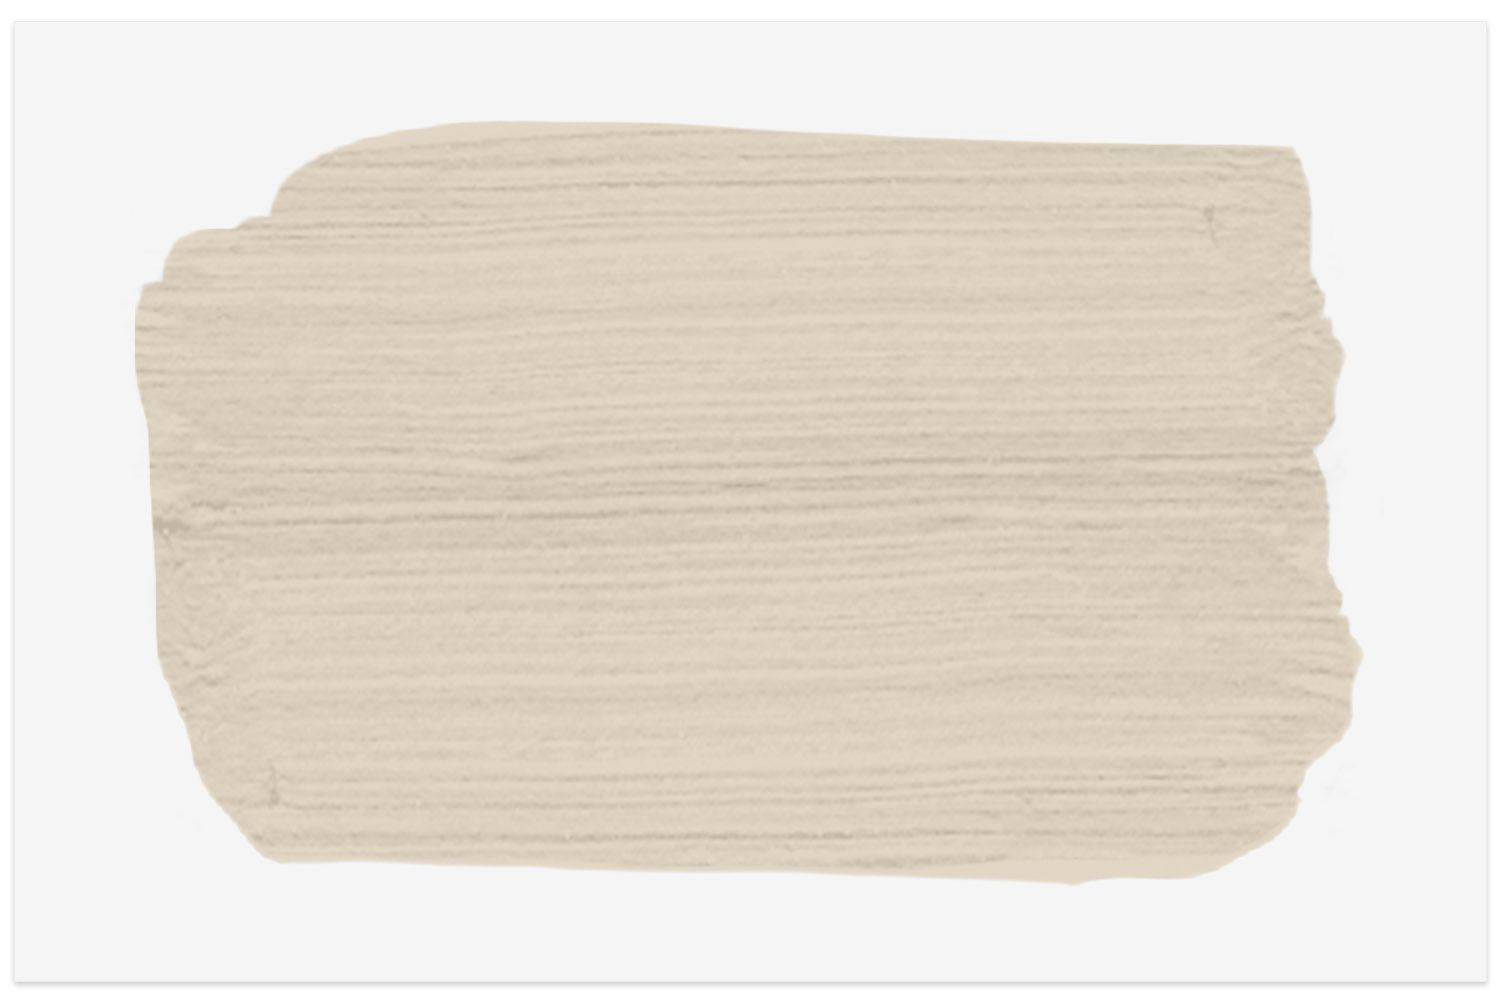 Rococo Beige HDC-NT-15 paint swatch from Behr